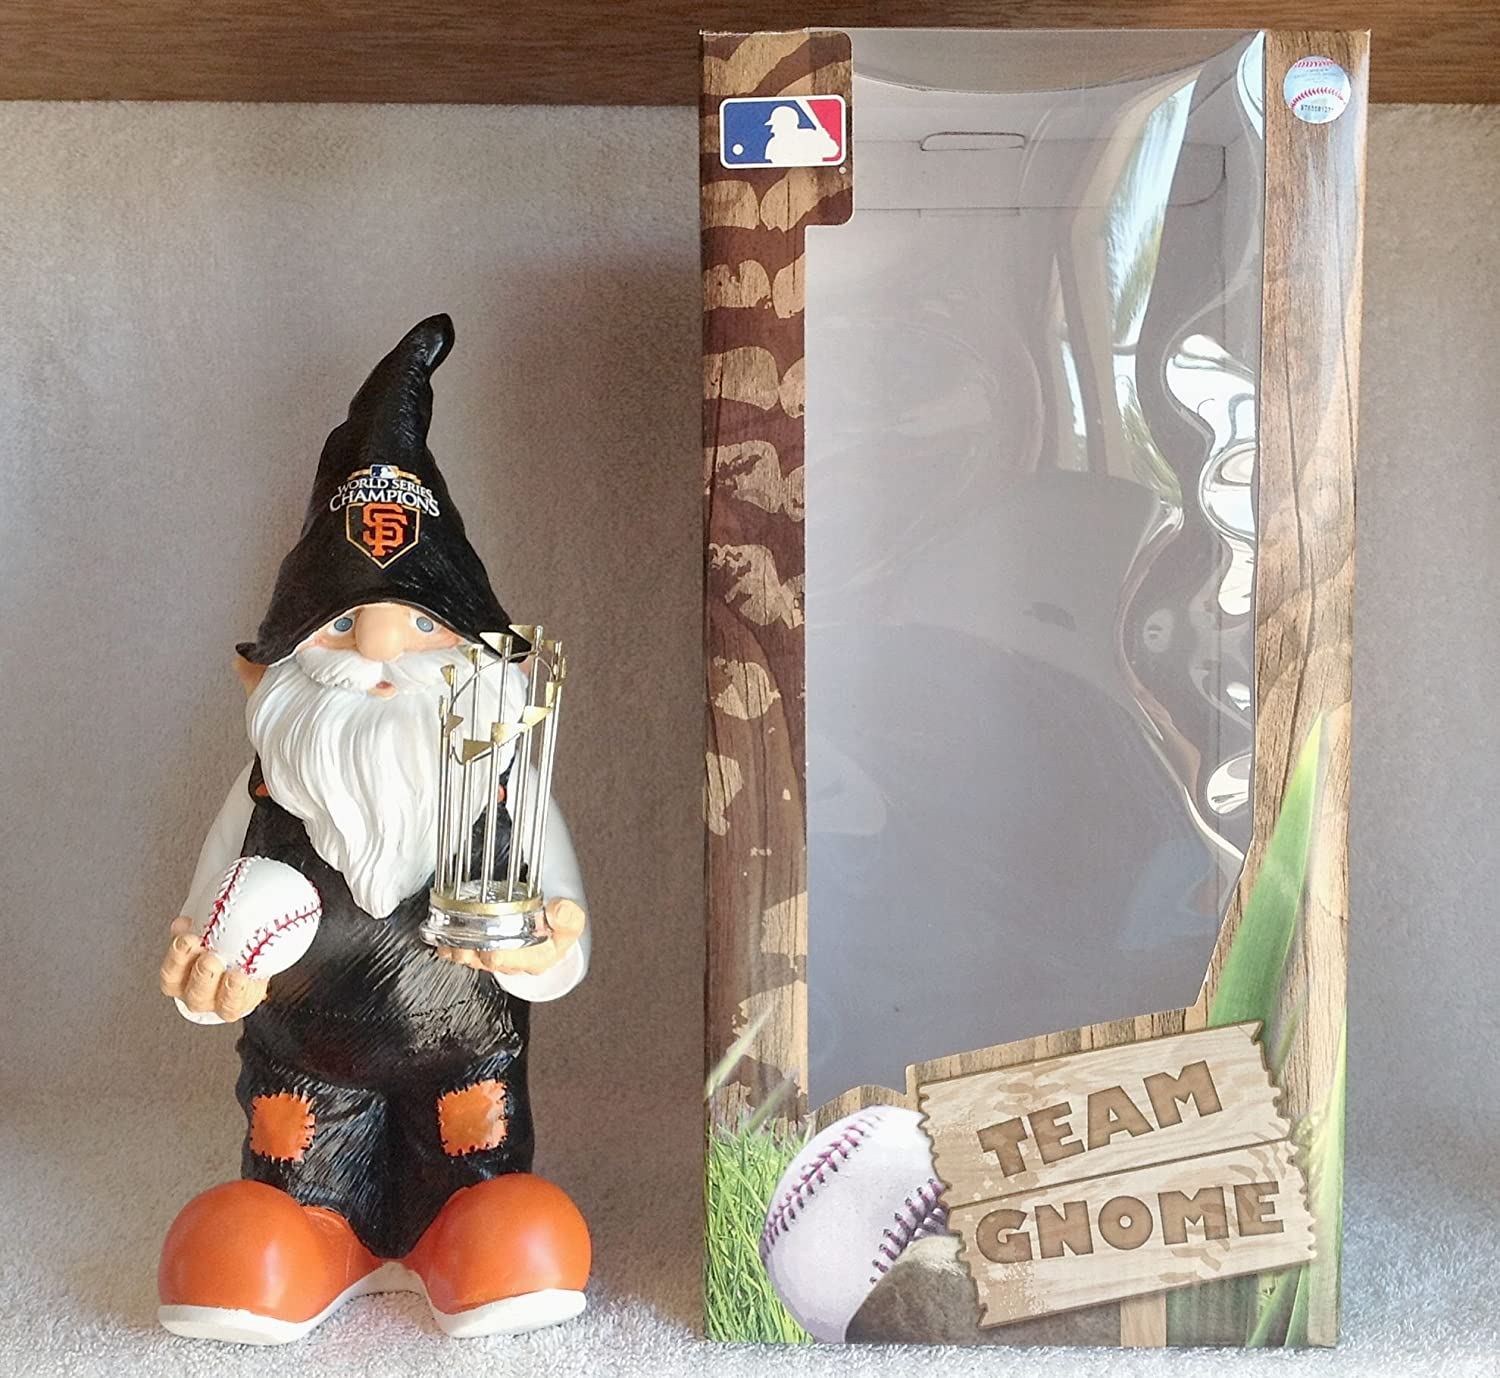 Gnome Giants Baseball World Series (2012) Bobblehead